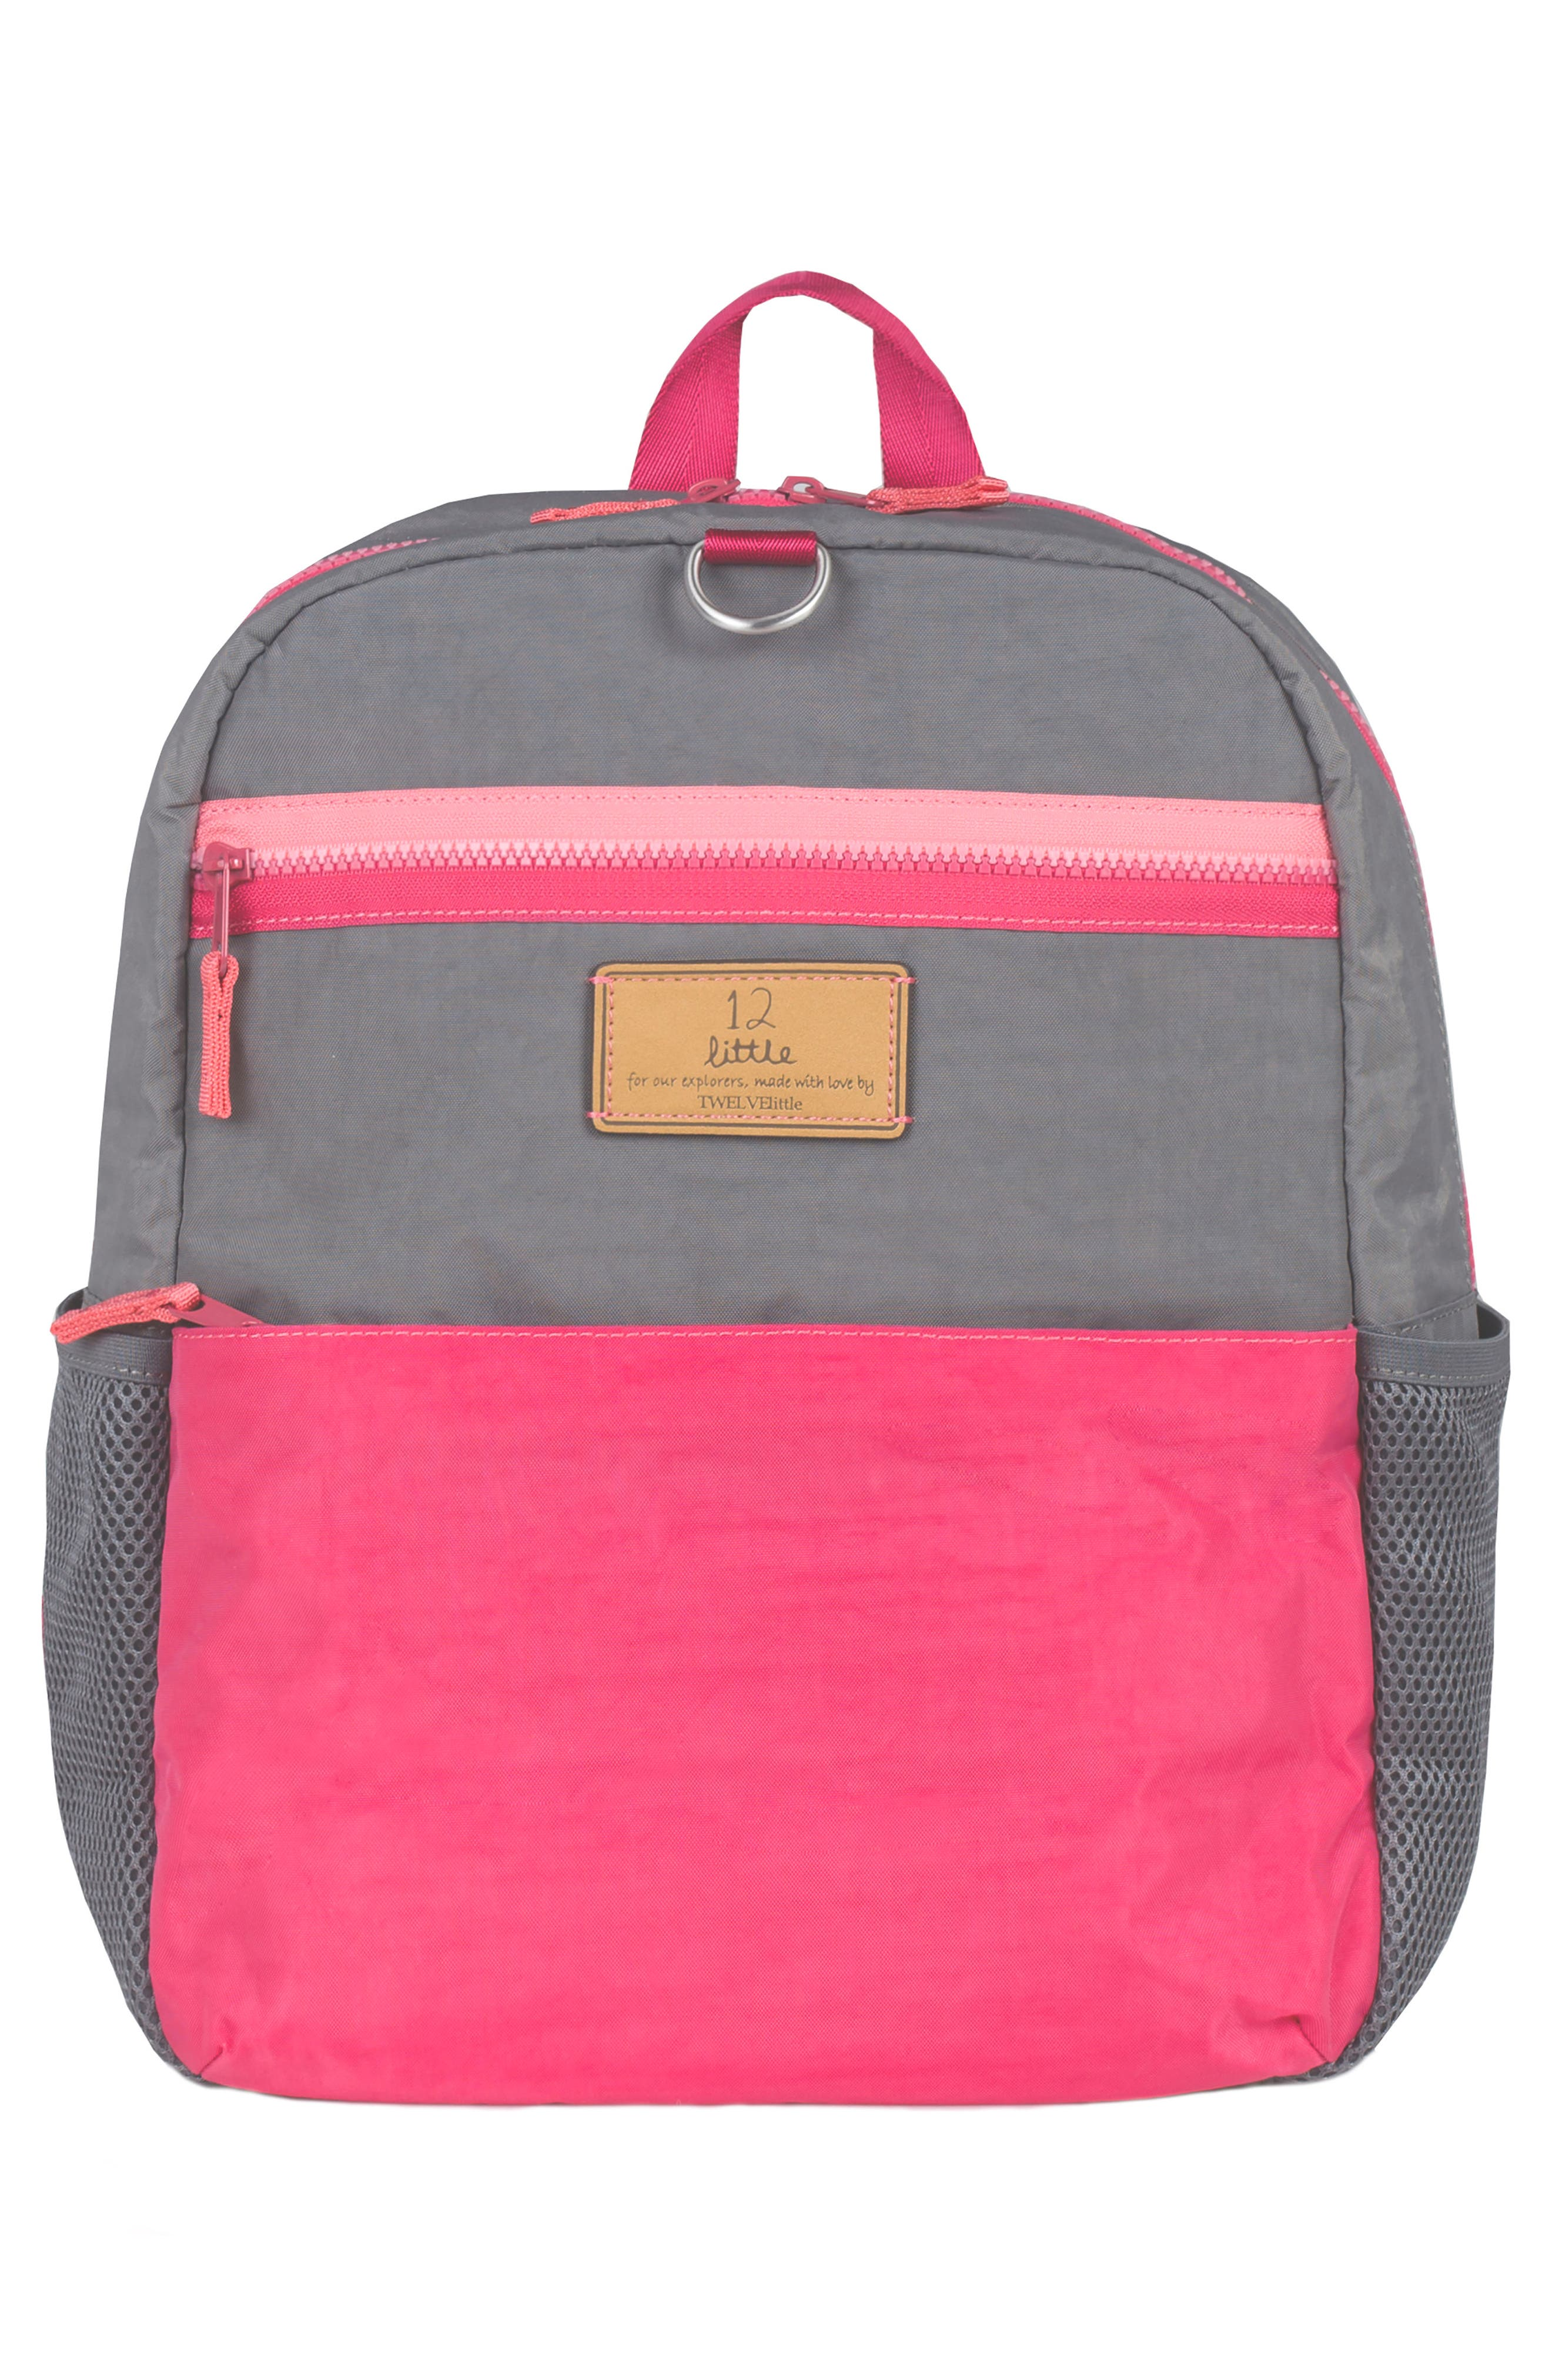 Courage Backpack,                             Alternate thumbnail 11, color,